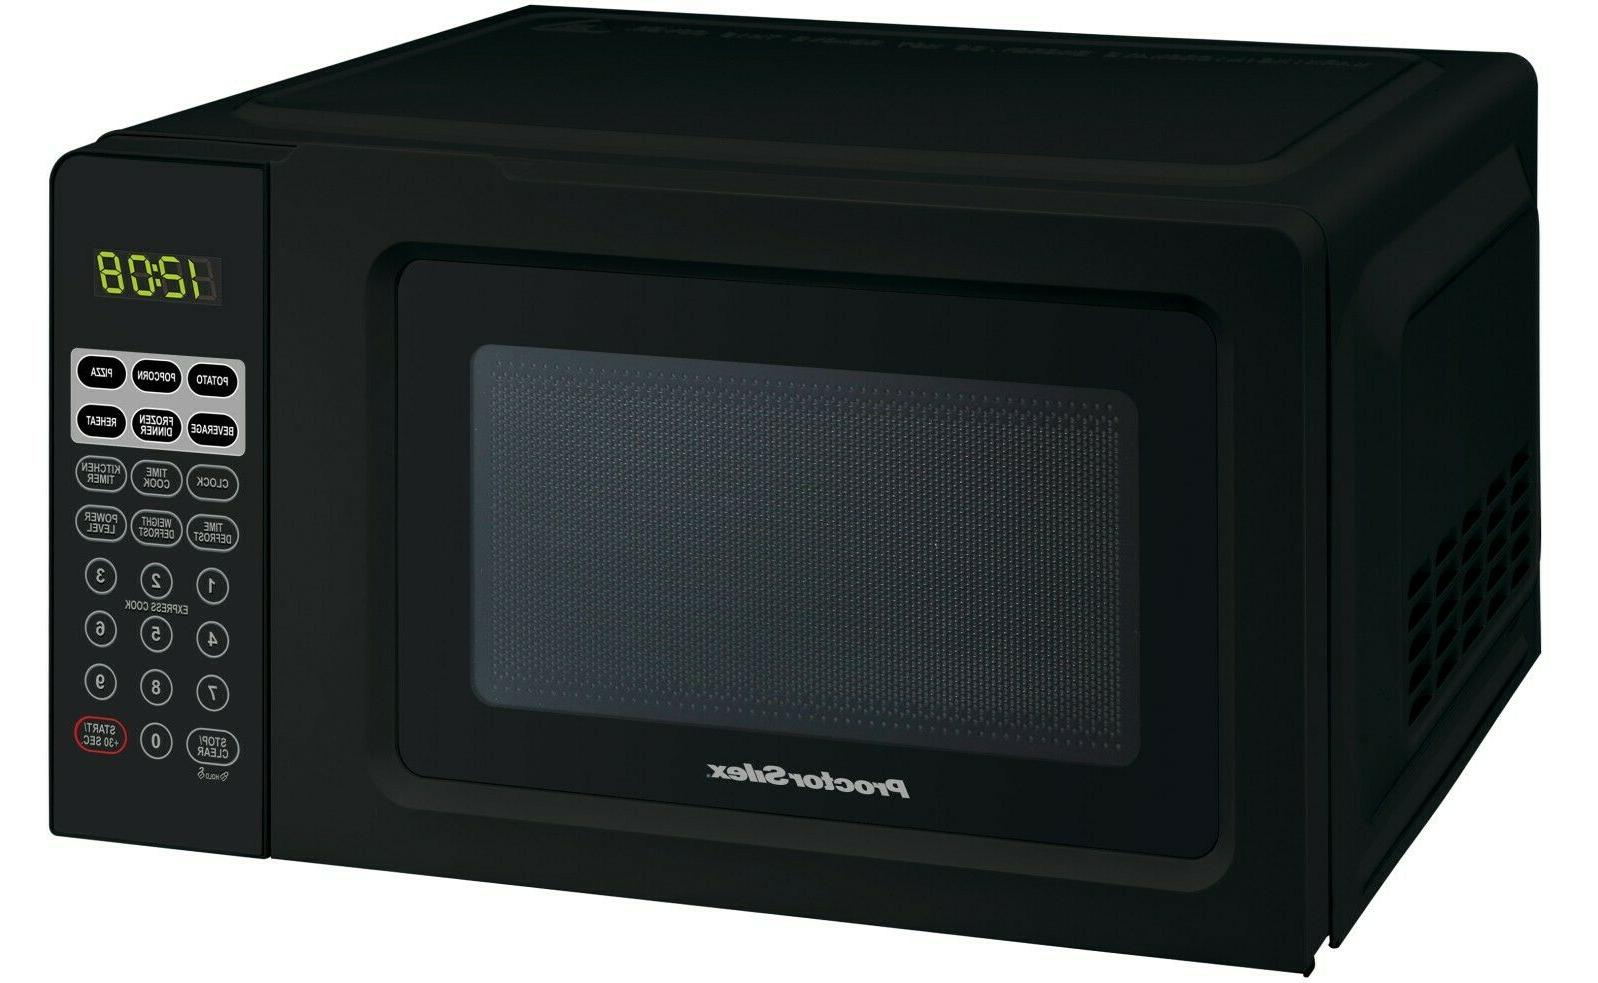 microwave oven digital compact countertop 7 cu